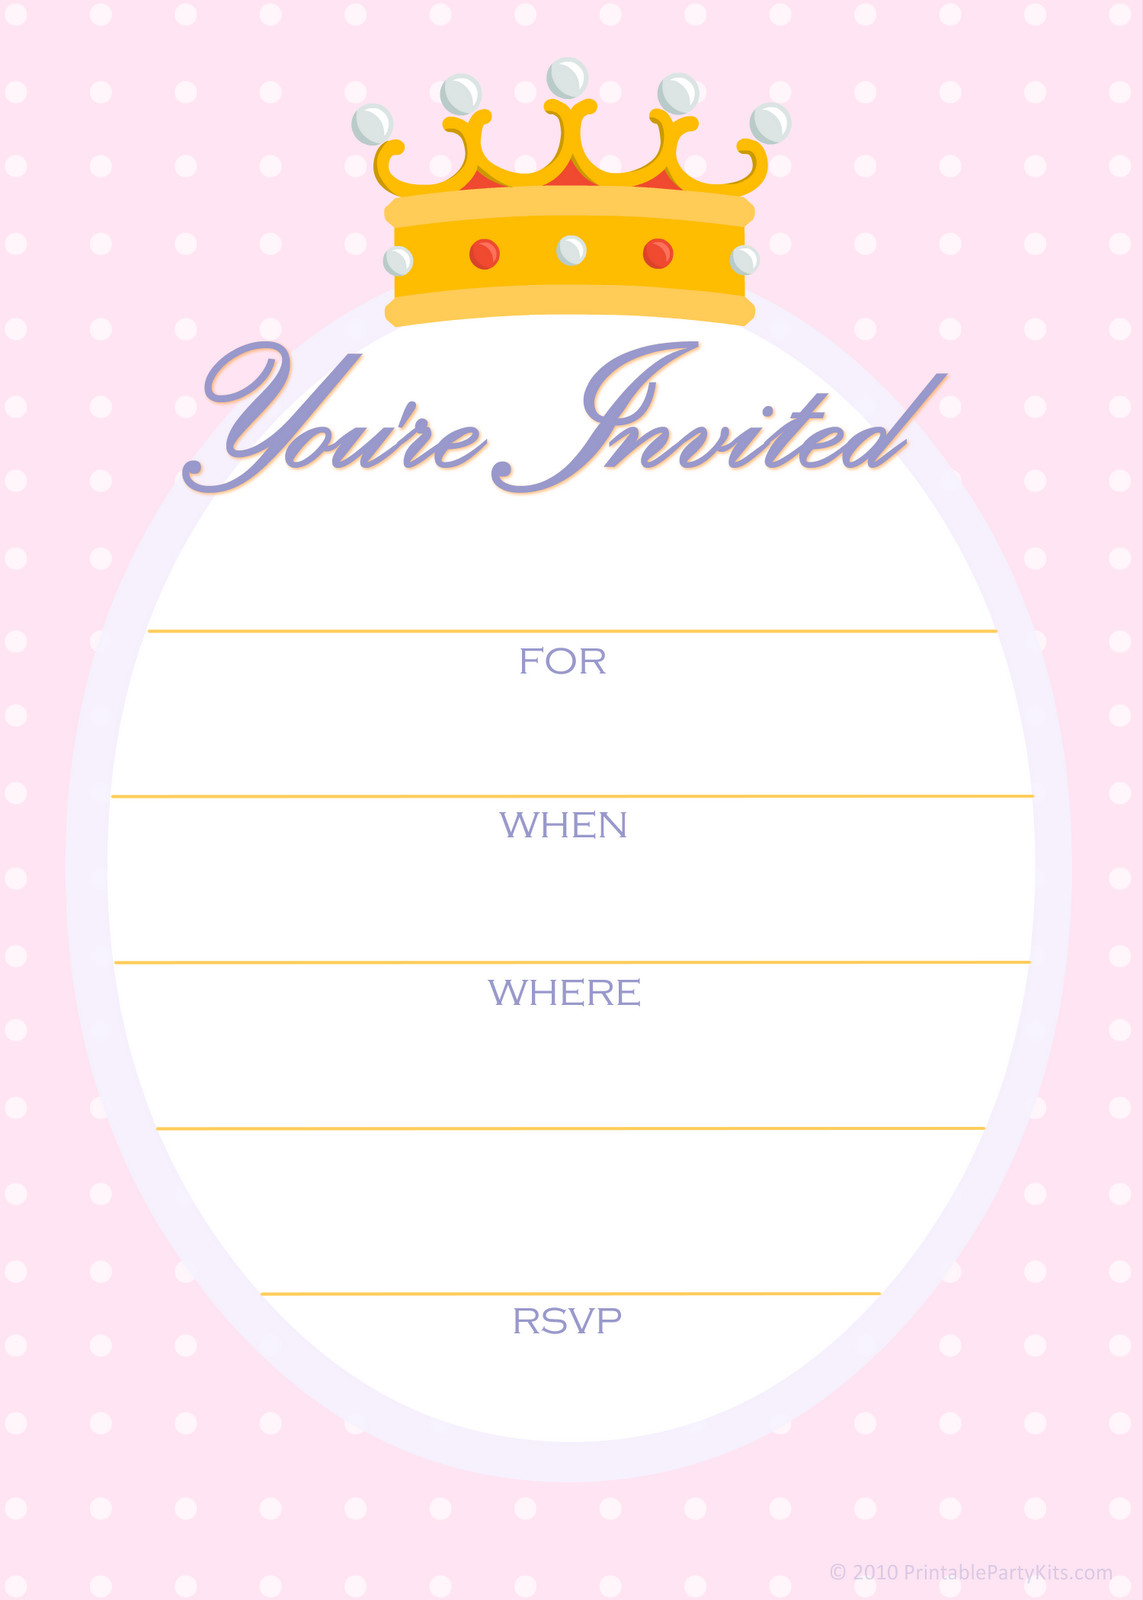 Best ideas about Birthday Party Invitation Template . Save or Pin FREE Printable Golden Unicorn Birthday Invitation Template Now.